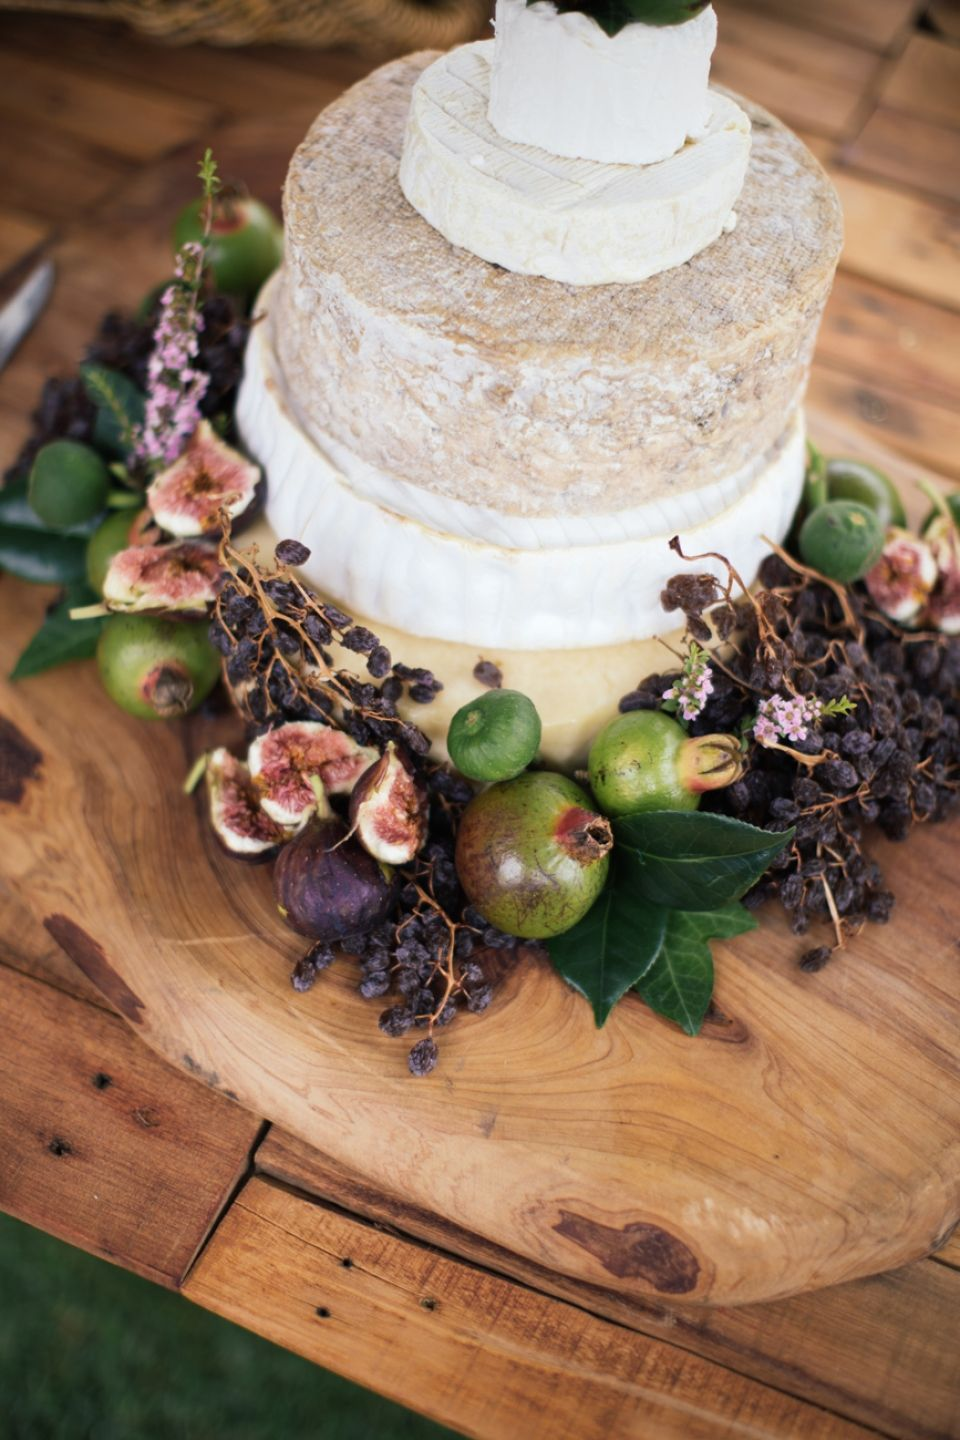 Cheese Stations / Catering by Duck Duck Goose (NSW, Australia)